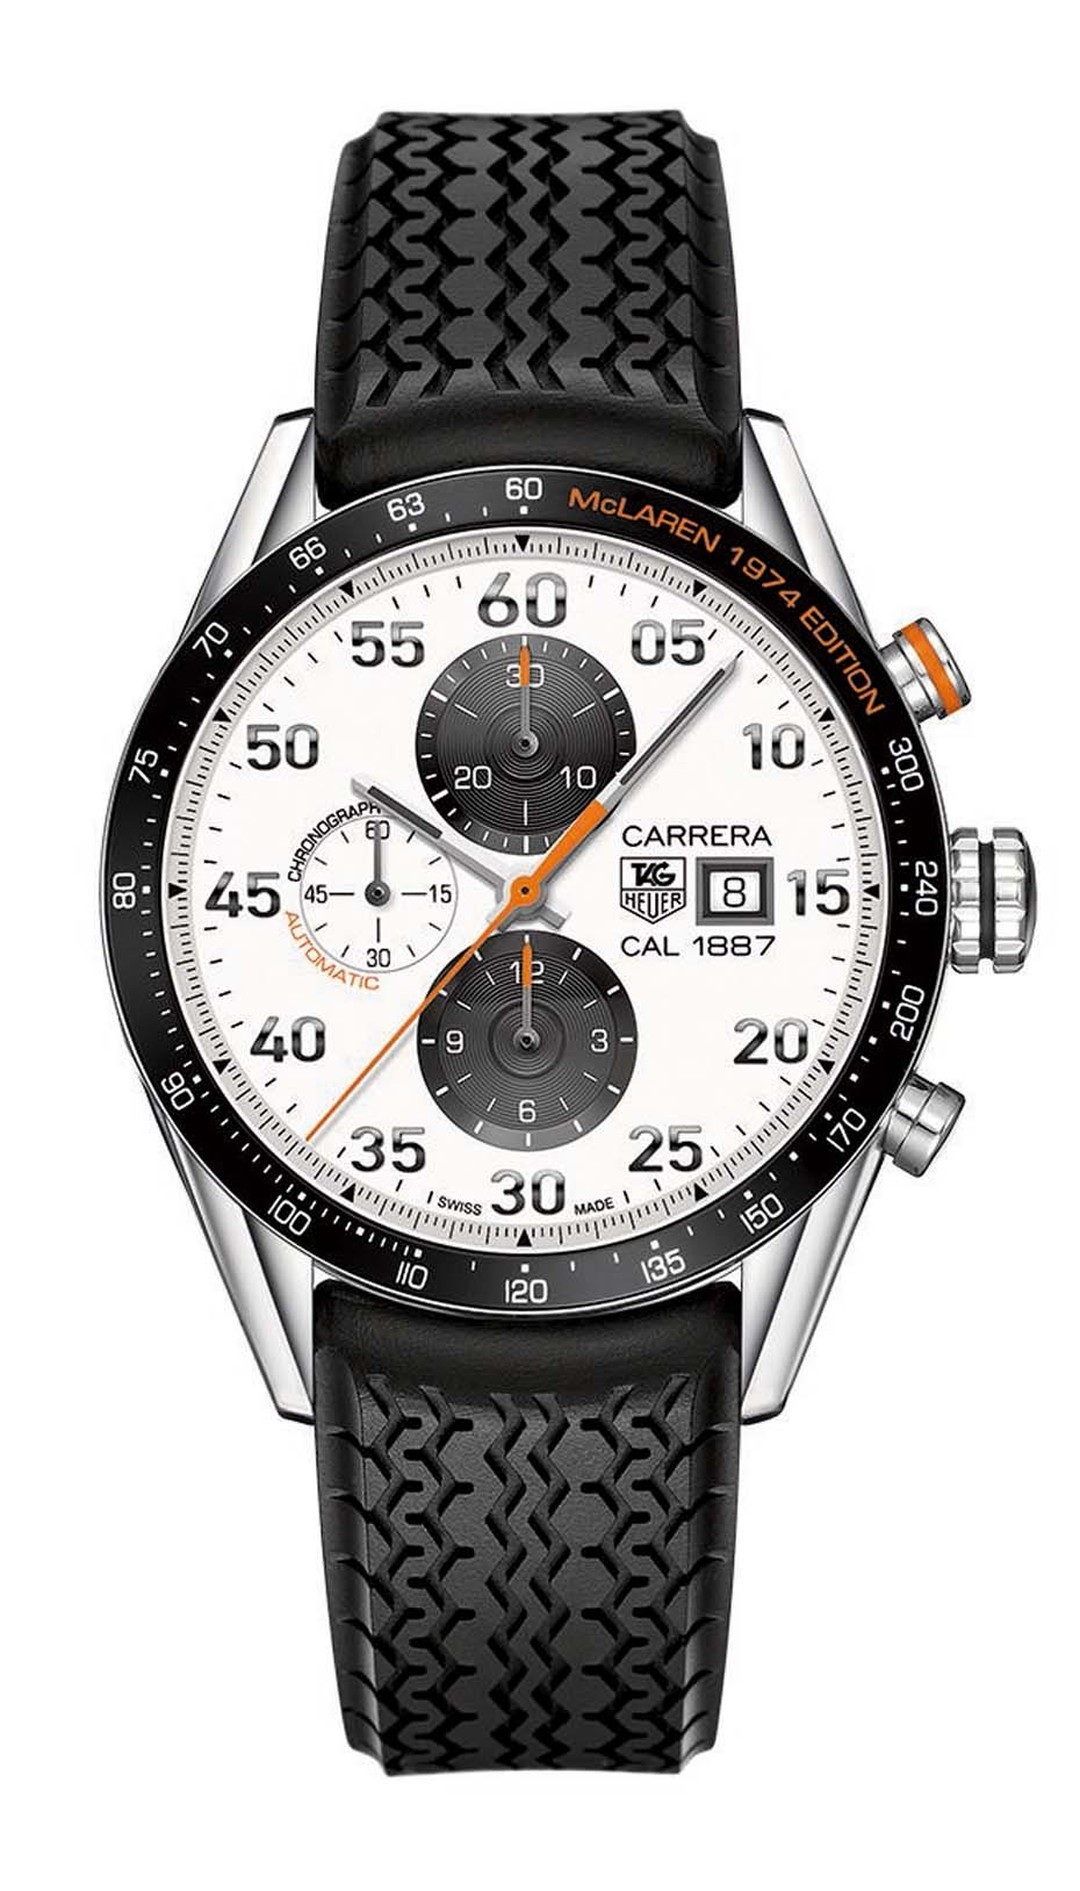 The TAG Heuer 43mm Carrera CH 1887 McLaren 1974 Edition celebrates a decade of McLaren watches and marks the 30th anniversary of its F1 partnership.